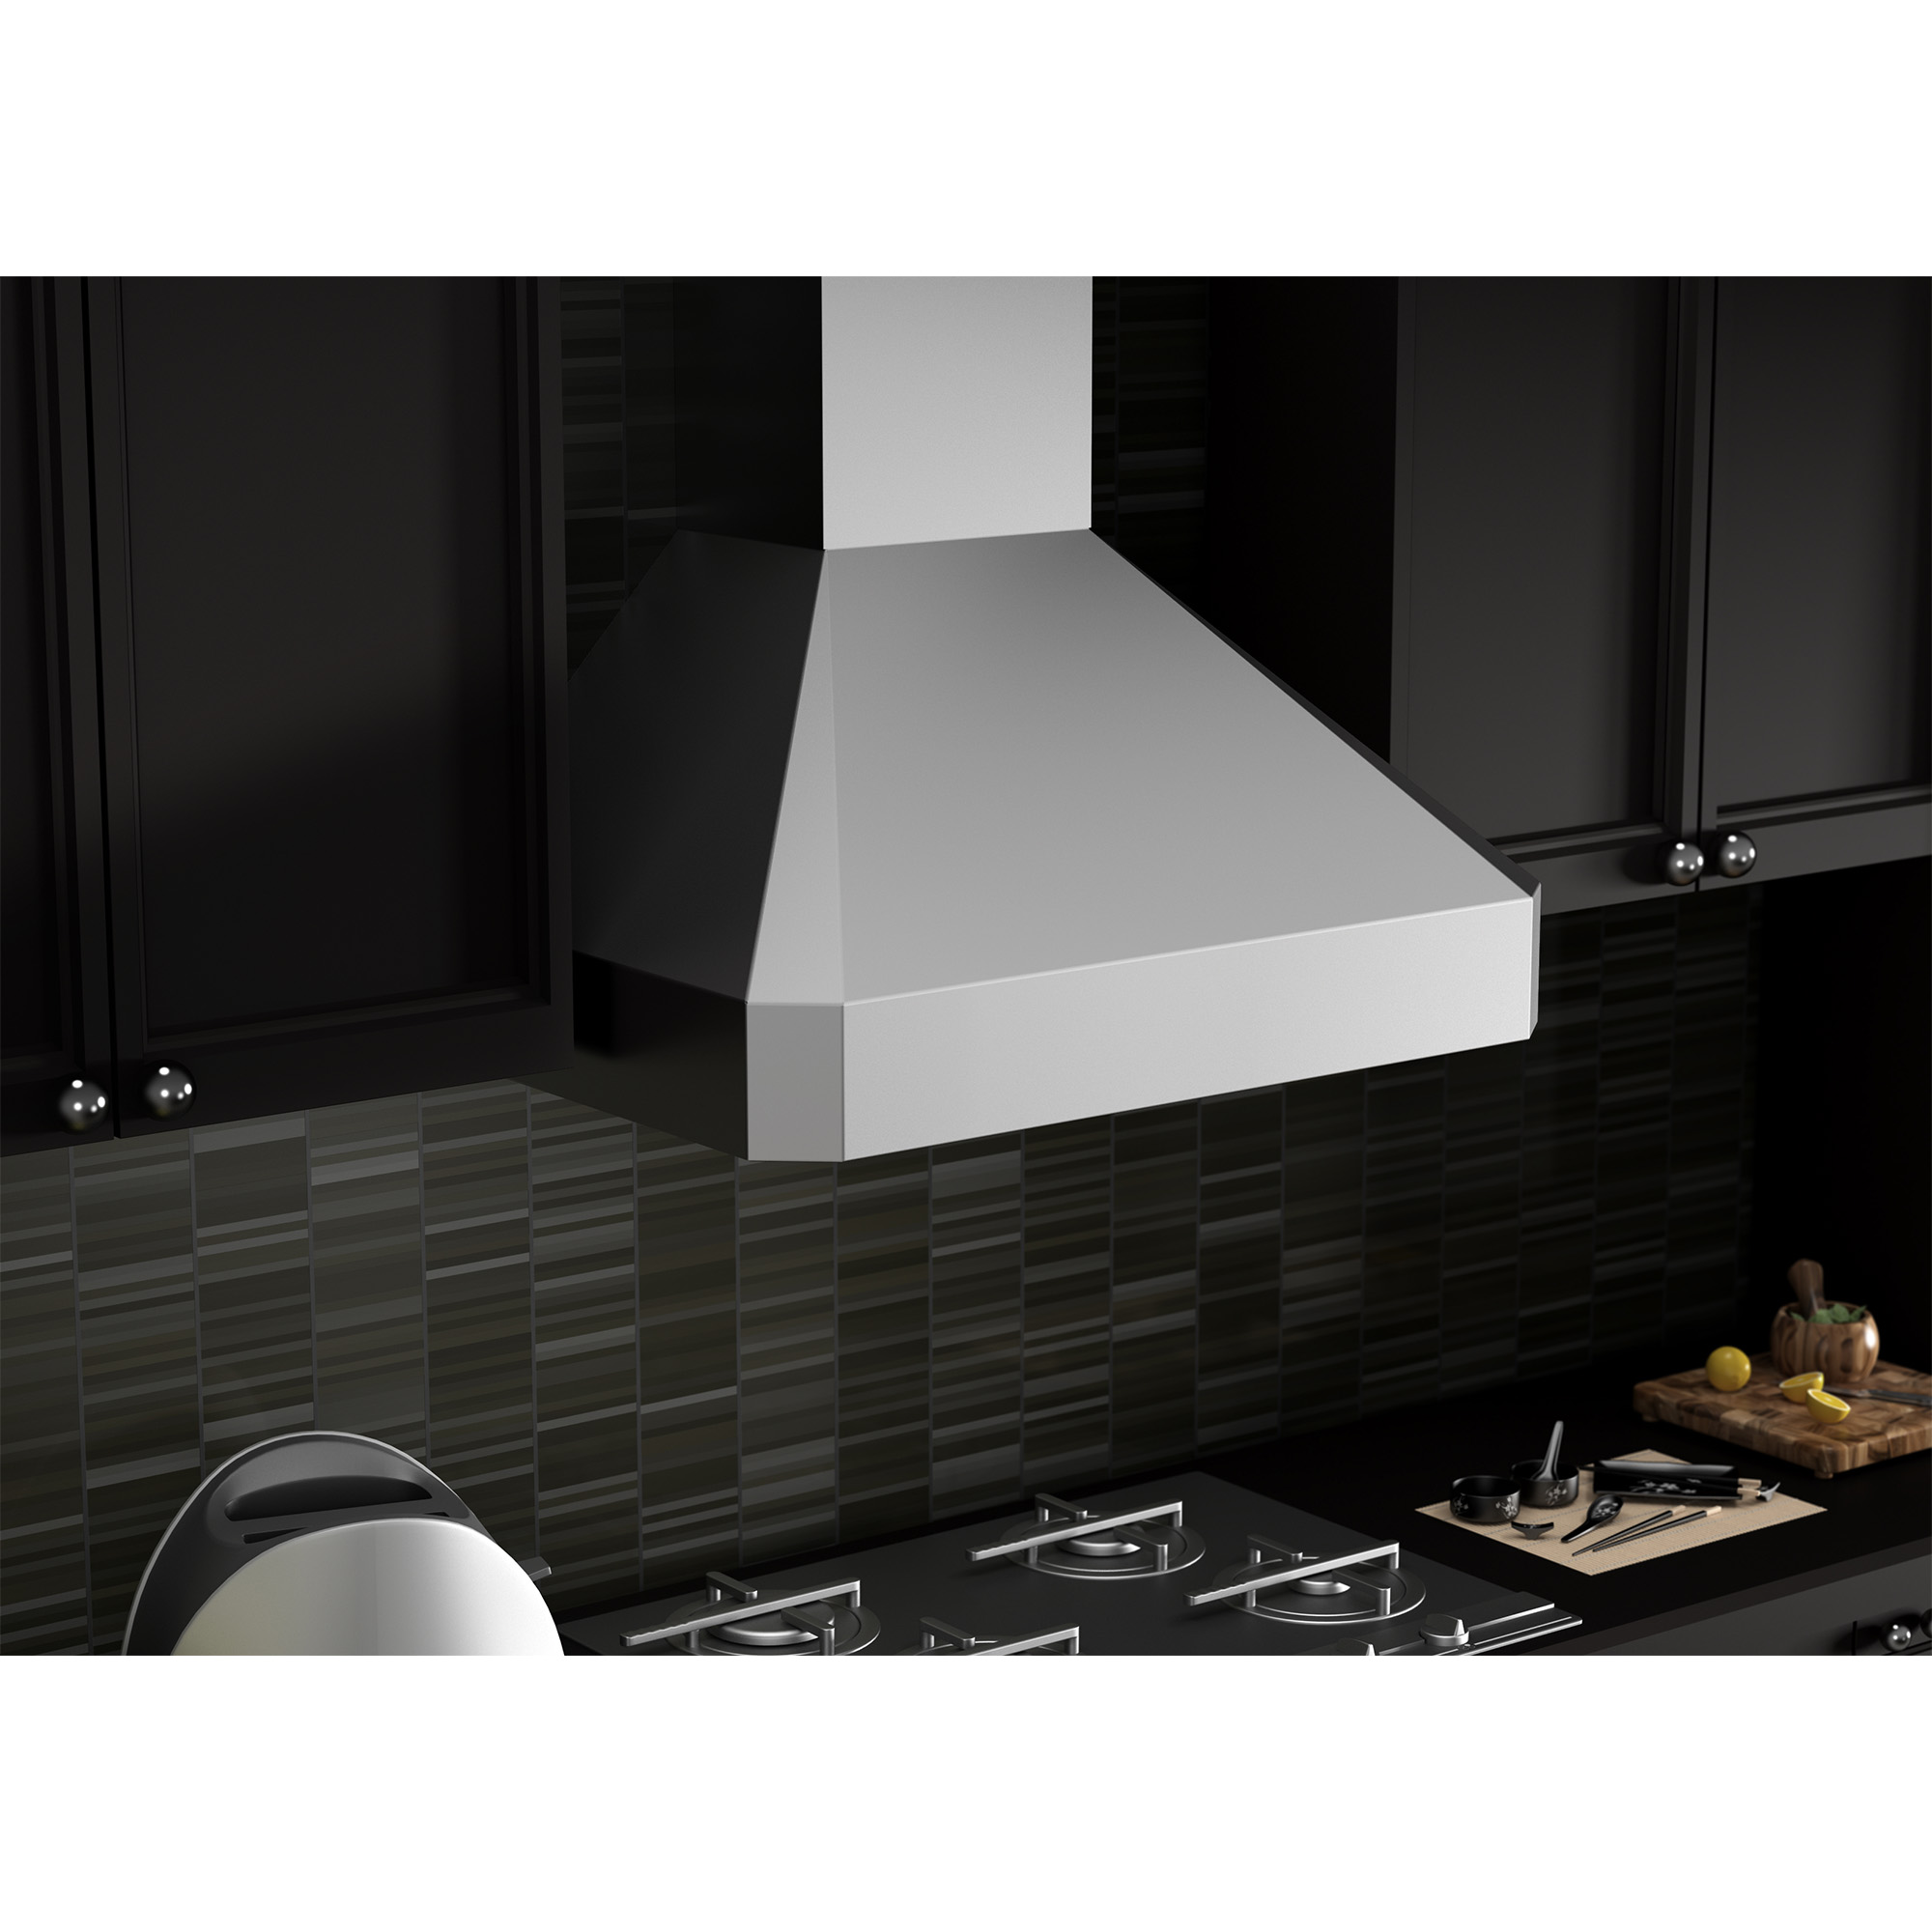 zline-stainless-steel-wall-mounted-range-hood-455-detail 1.jpg